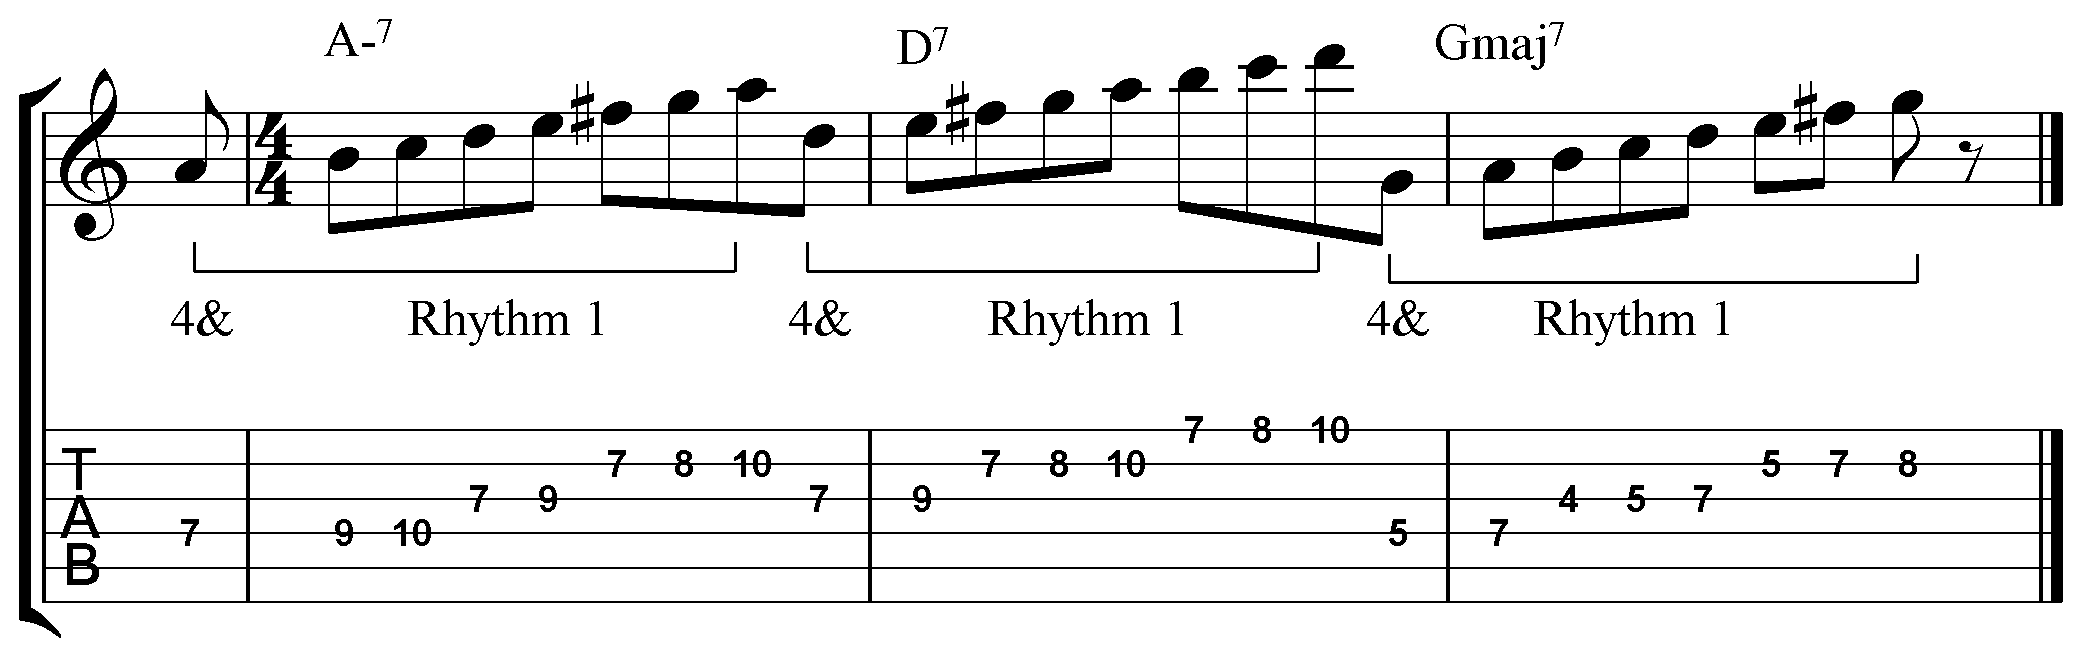 Beginner jazz improvisation jamie holroyd guitar jamie holroyd beginner jazz improvisation techniques 1 rhythm 3 chords hexwebz Choice Image